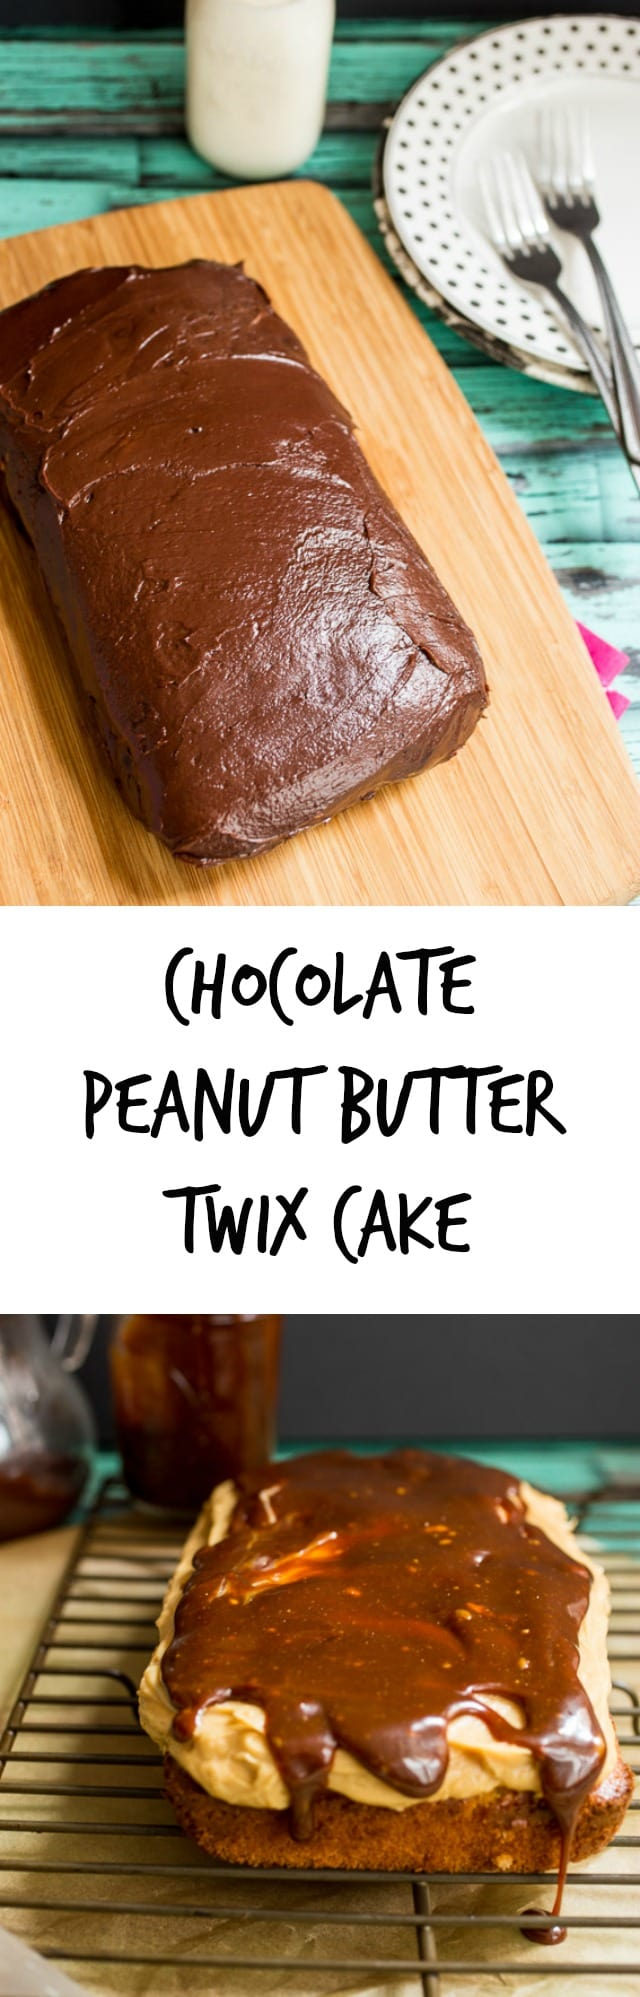 Chocolate Peanut Butter Twix Cake | girlinthelittleredkitchen.com